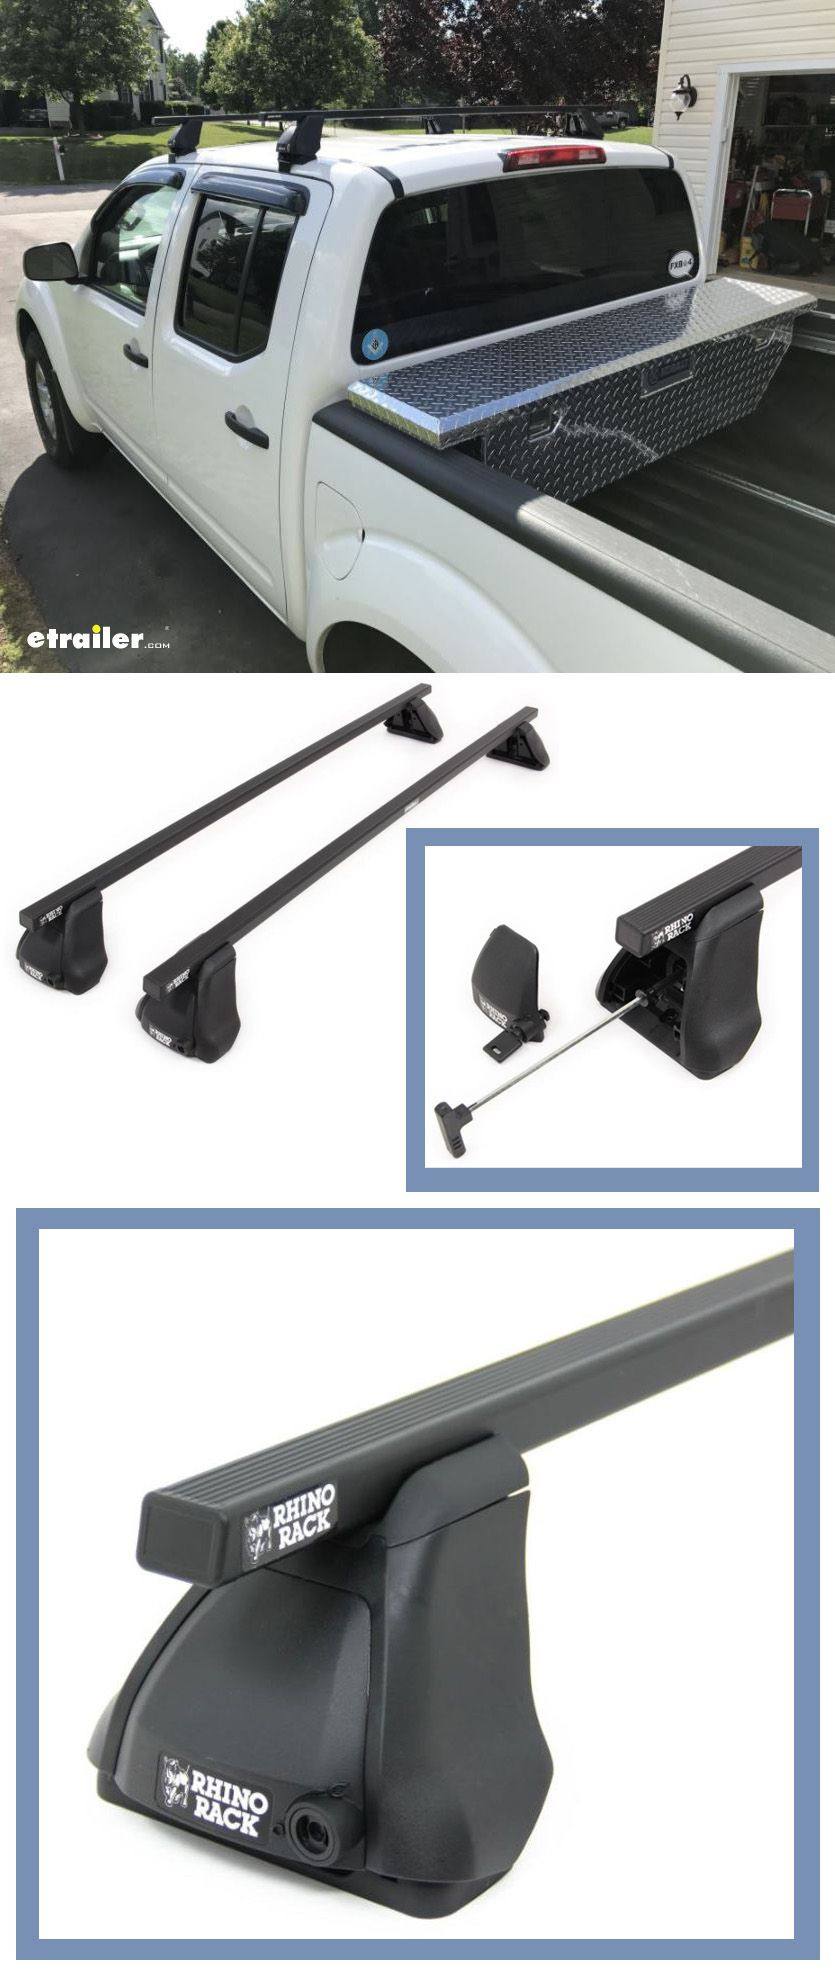 Euro Style Roof Rack Lets You Mount Accessories On Your Truck With A